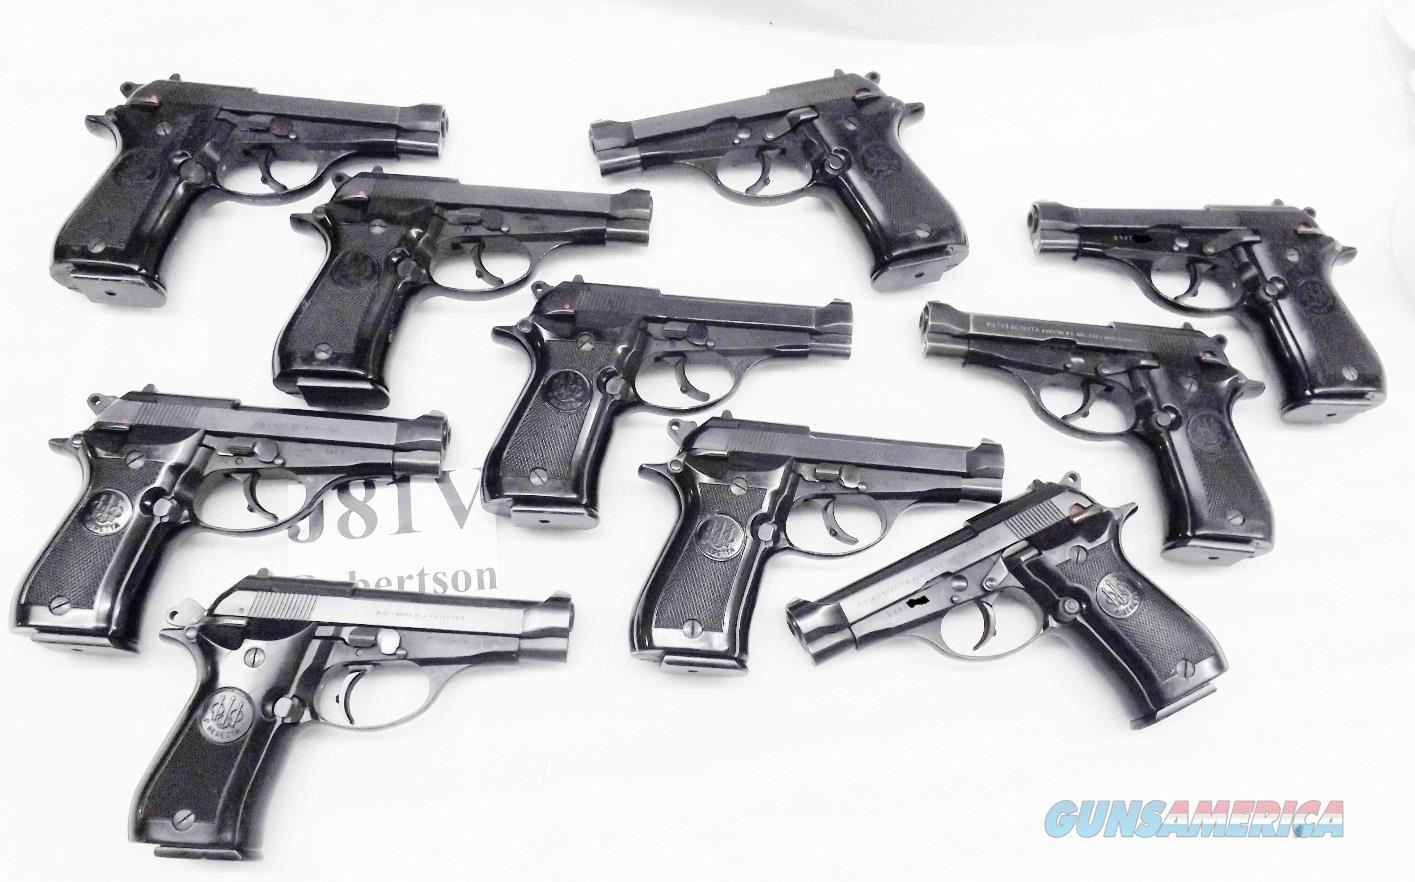 FFL Only 10 Beretta .32 ACP model 81 Cheetah Pistols $209 each & Free Ship Lower 48, 1980-81 Italian Corrections Issue VG Condition 1 – 12 Round Magazine J81F200M type Compliant Magazines available   Guns > Pistols > Beretta Pistols > Cheetah Series > Model 81